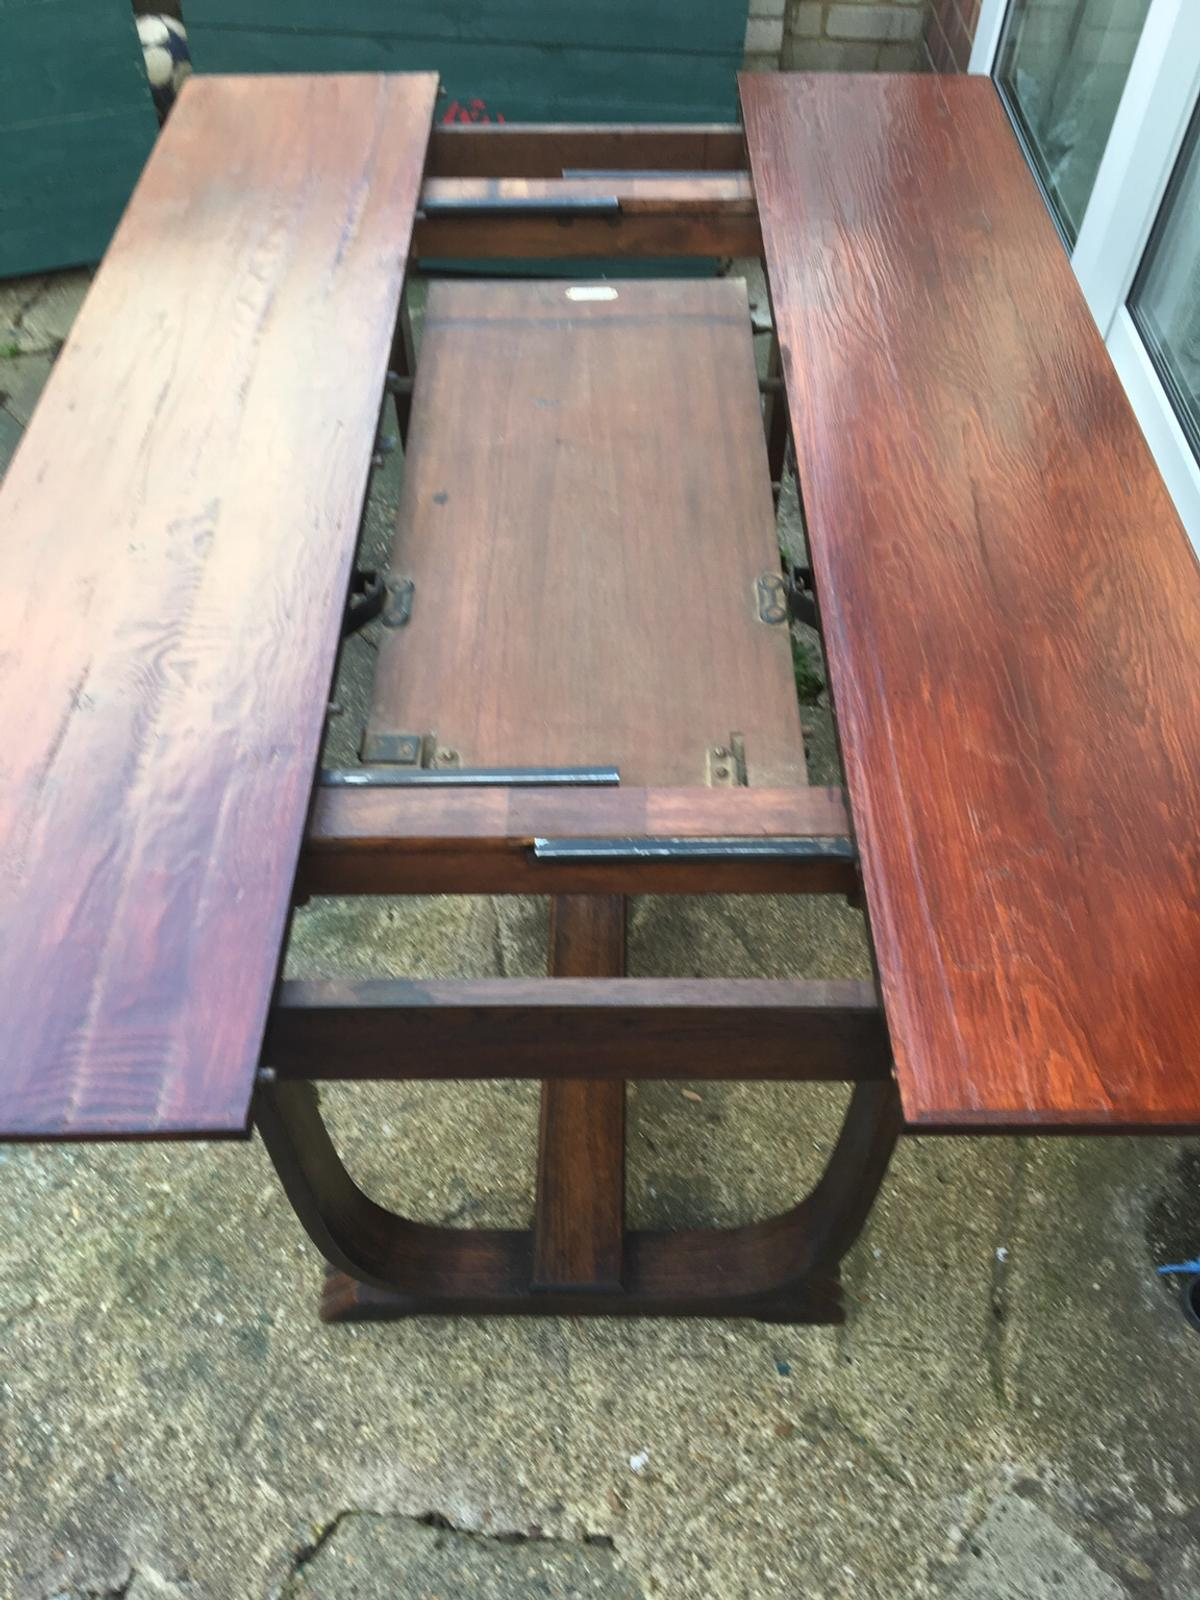 Antique Ee Zi Way Extended Table In TW47bx Middlesex For ...